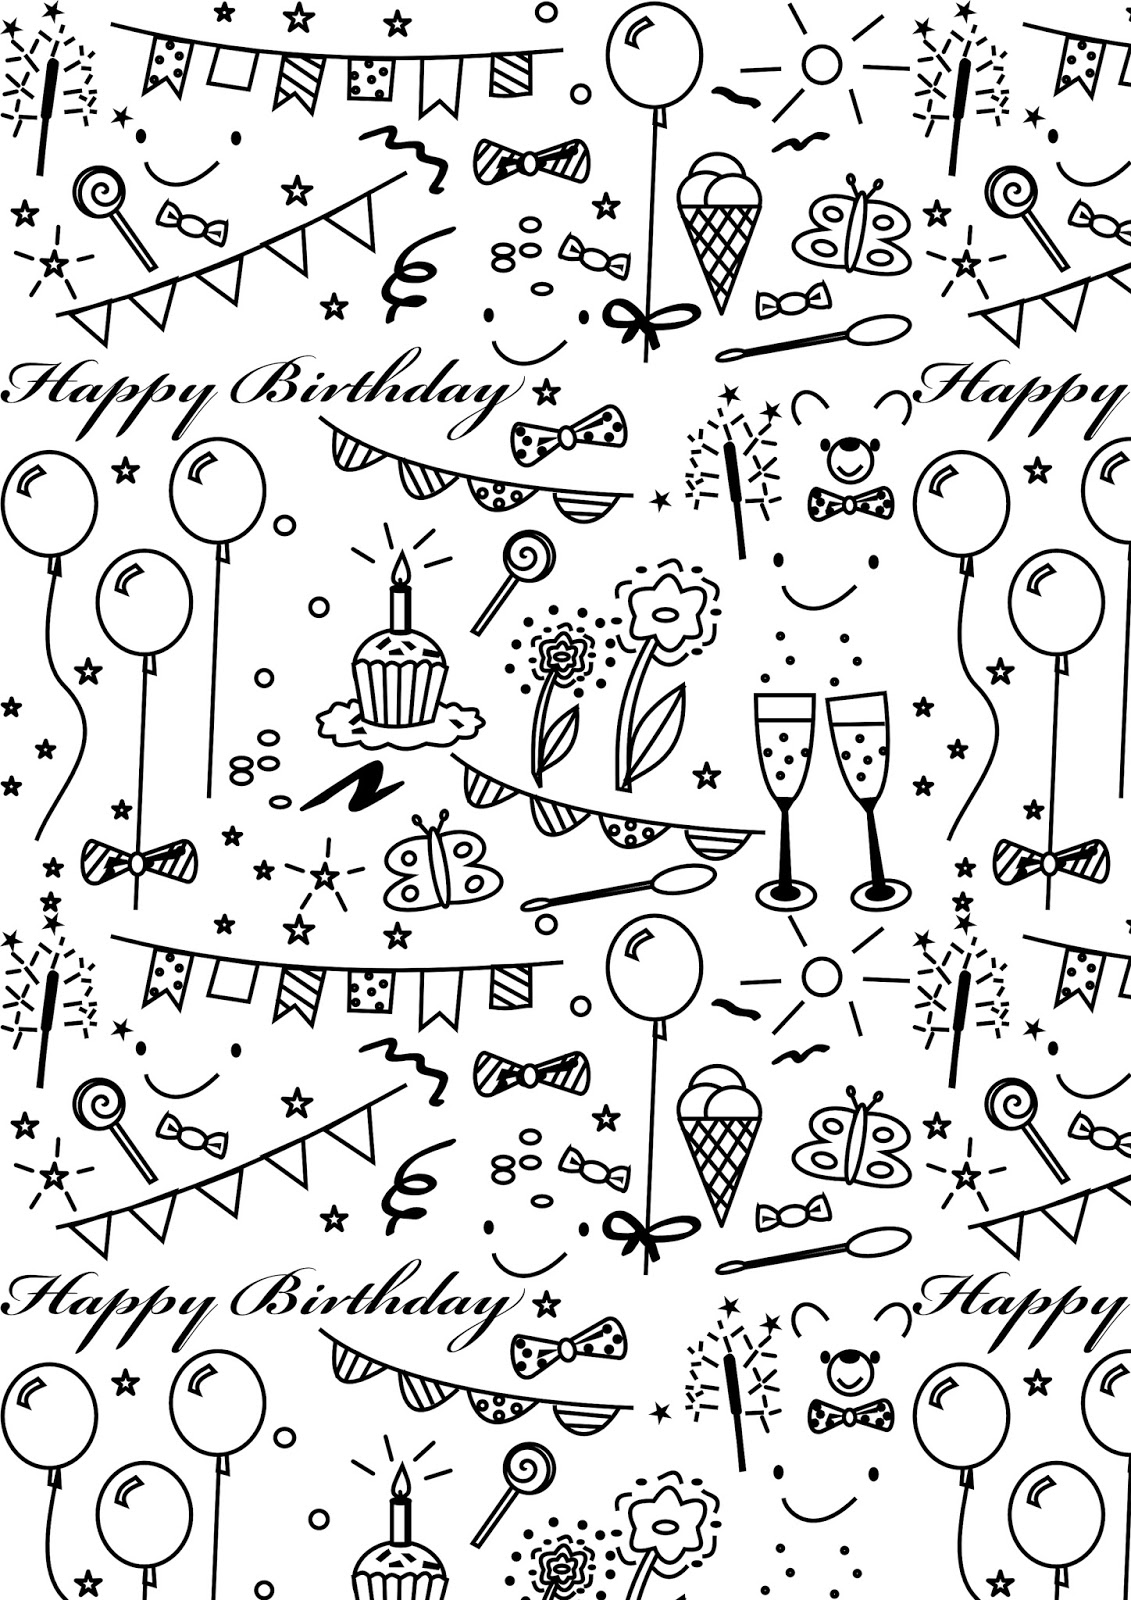 coloring printable birthday happy birthday coloring pages to download and print for free birthday printable coloring